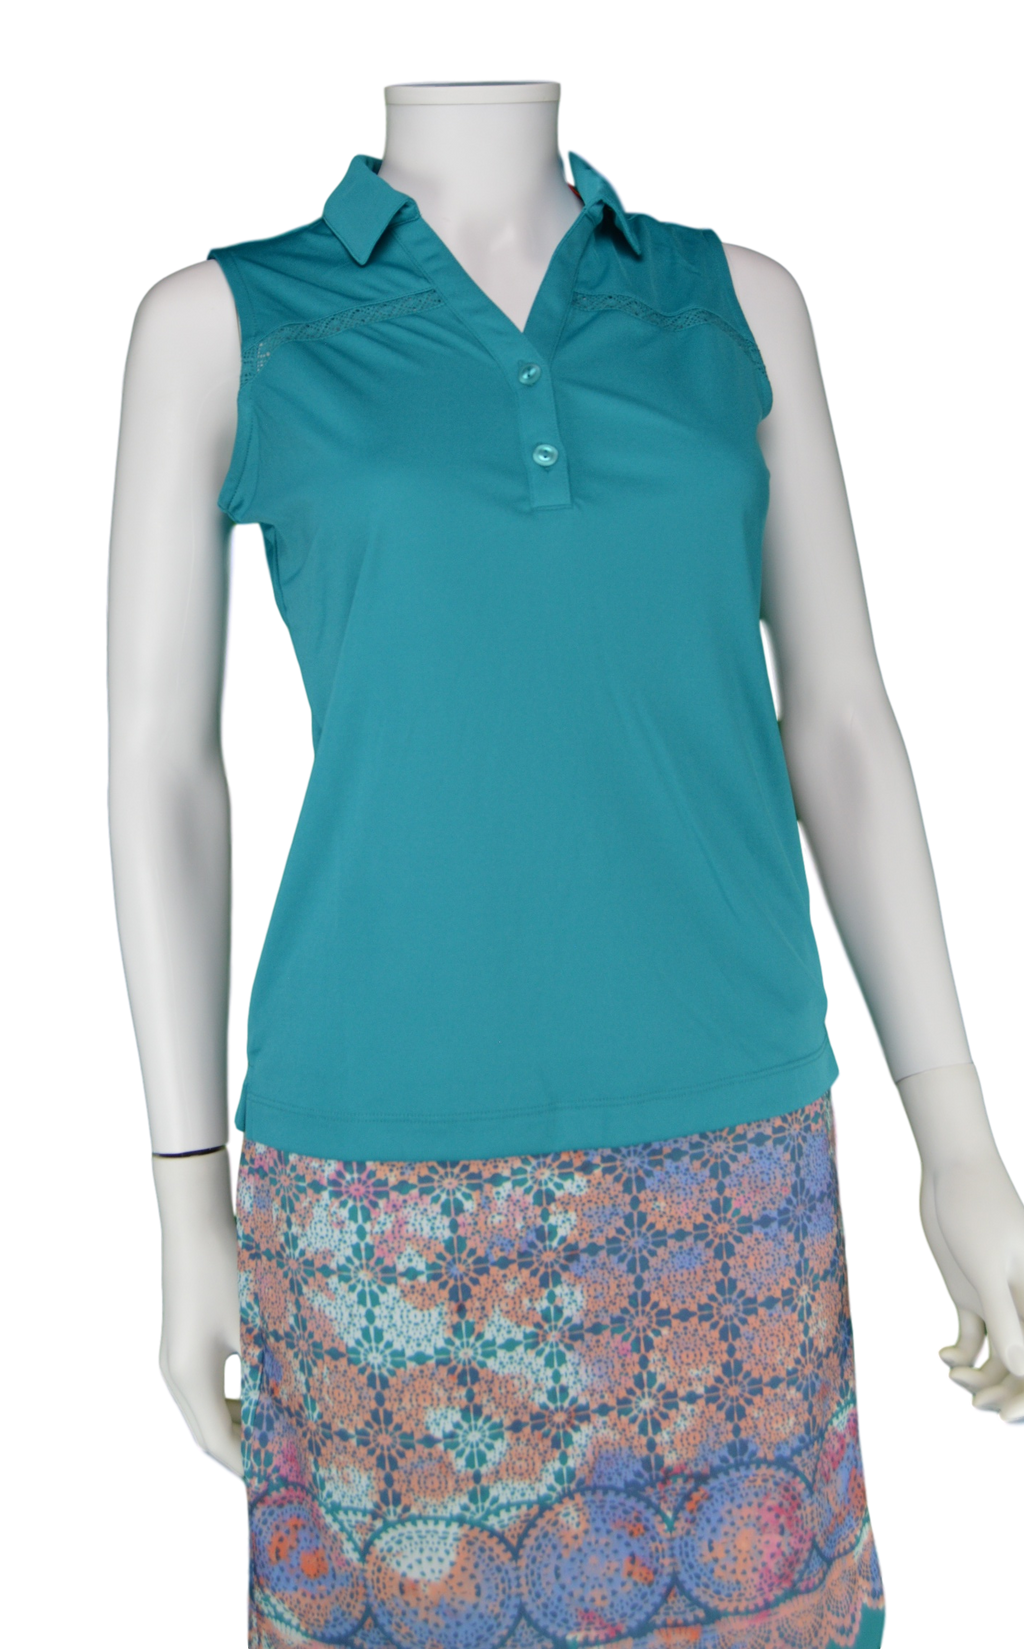 EP Pro Cassis Tour Tech Sleeveless Polo - Aqua Crush